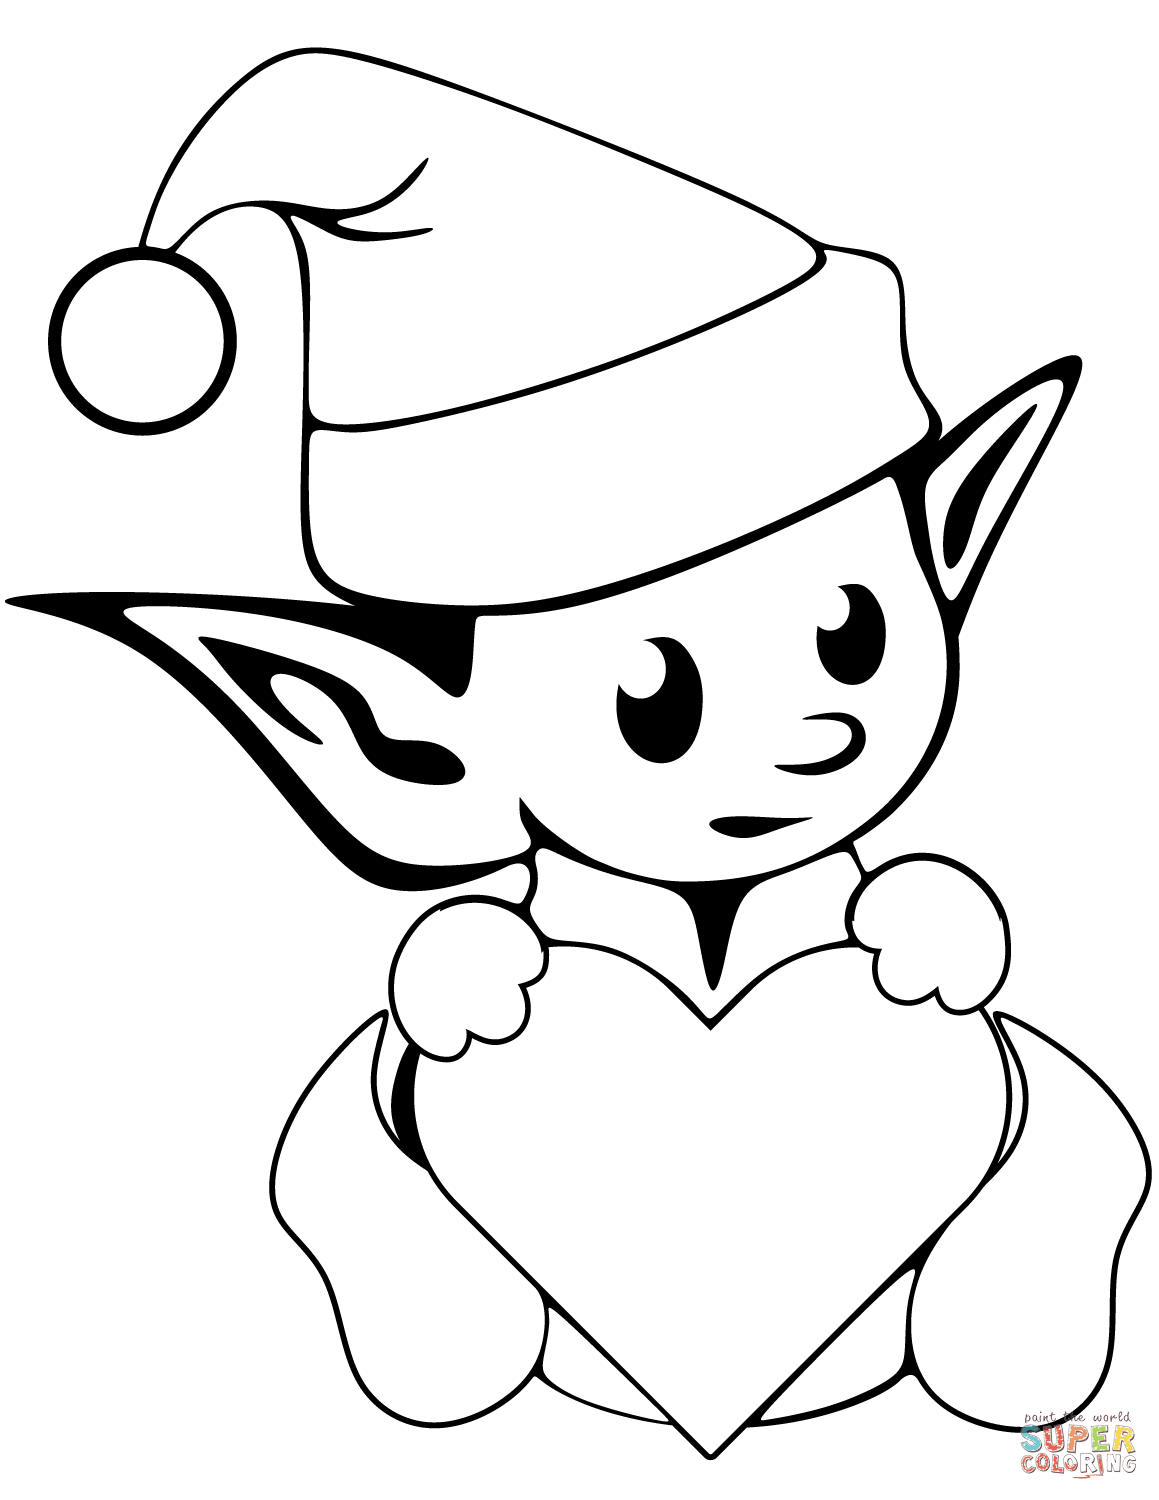 1159x1500 Cute Christmas Elf Coloring Page Free Printable Pages